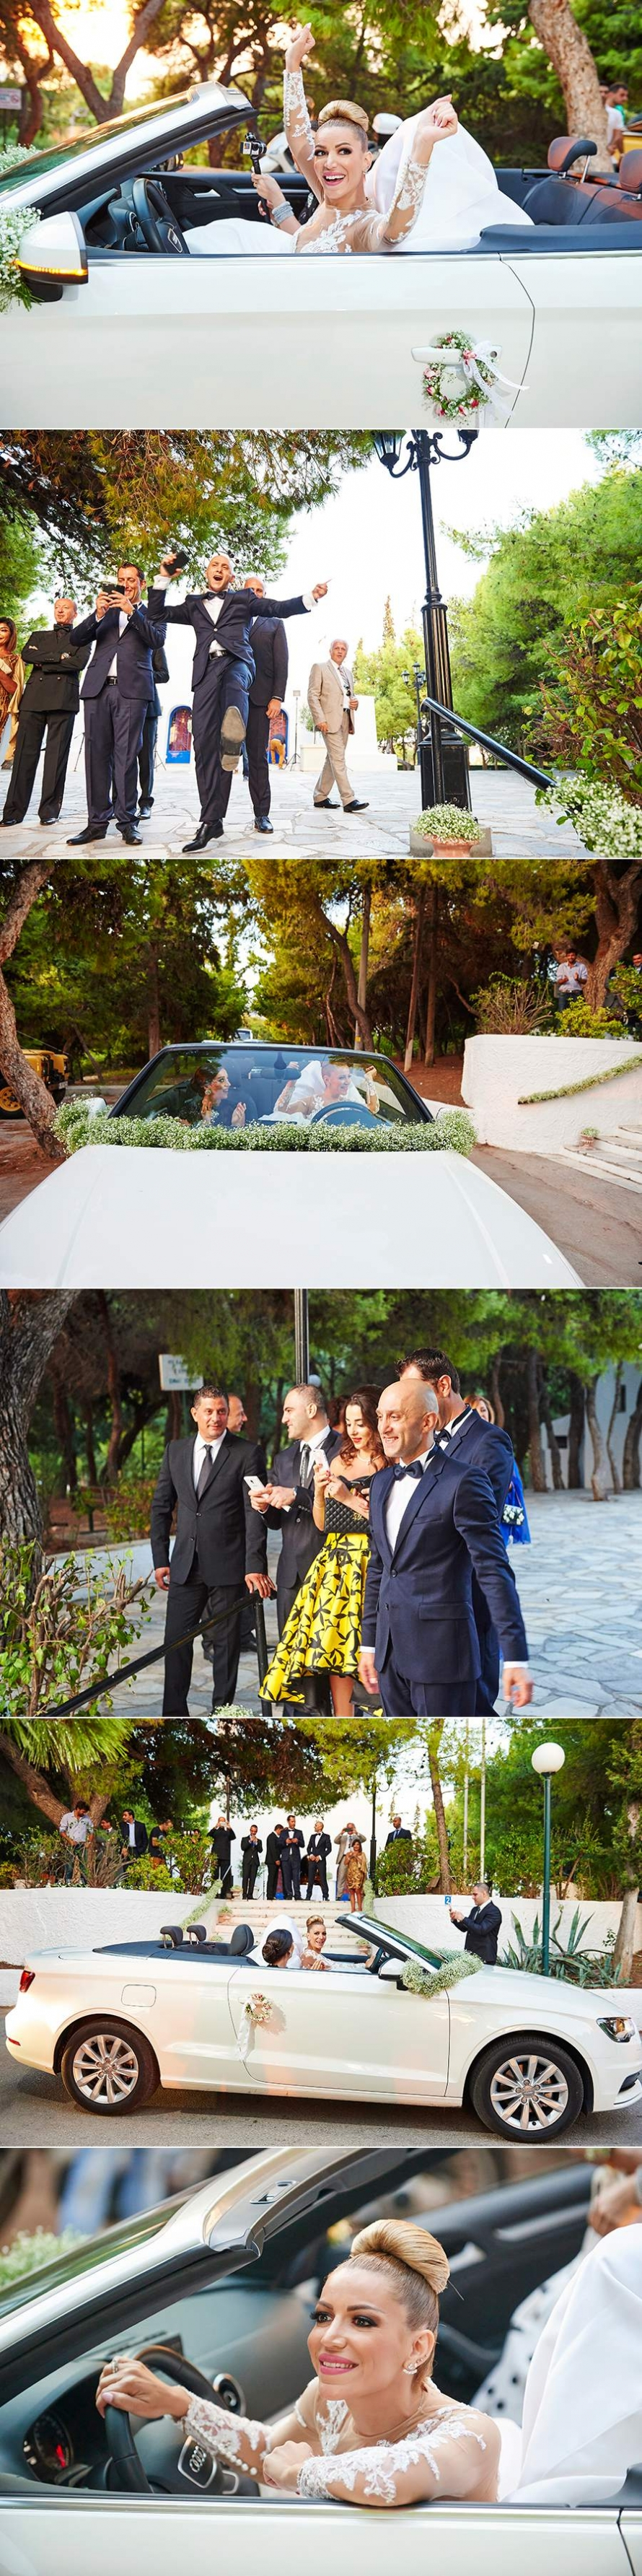 Fady Rana wedding photo 10